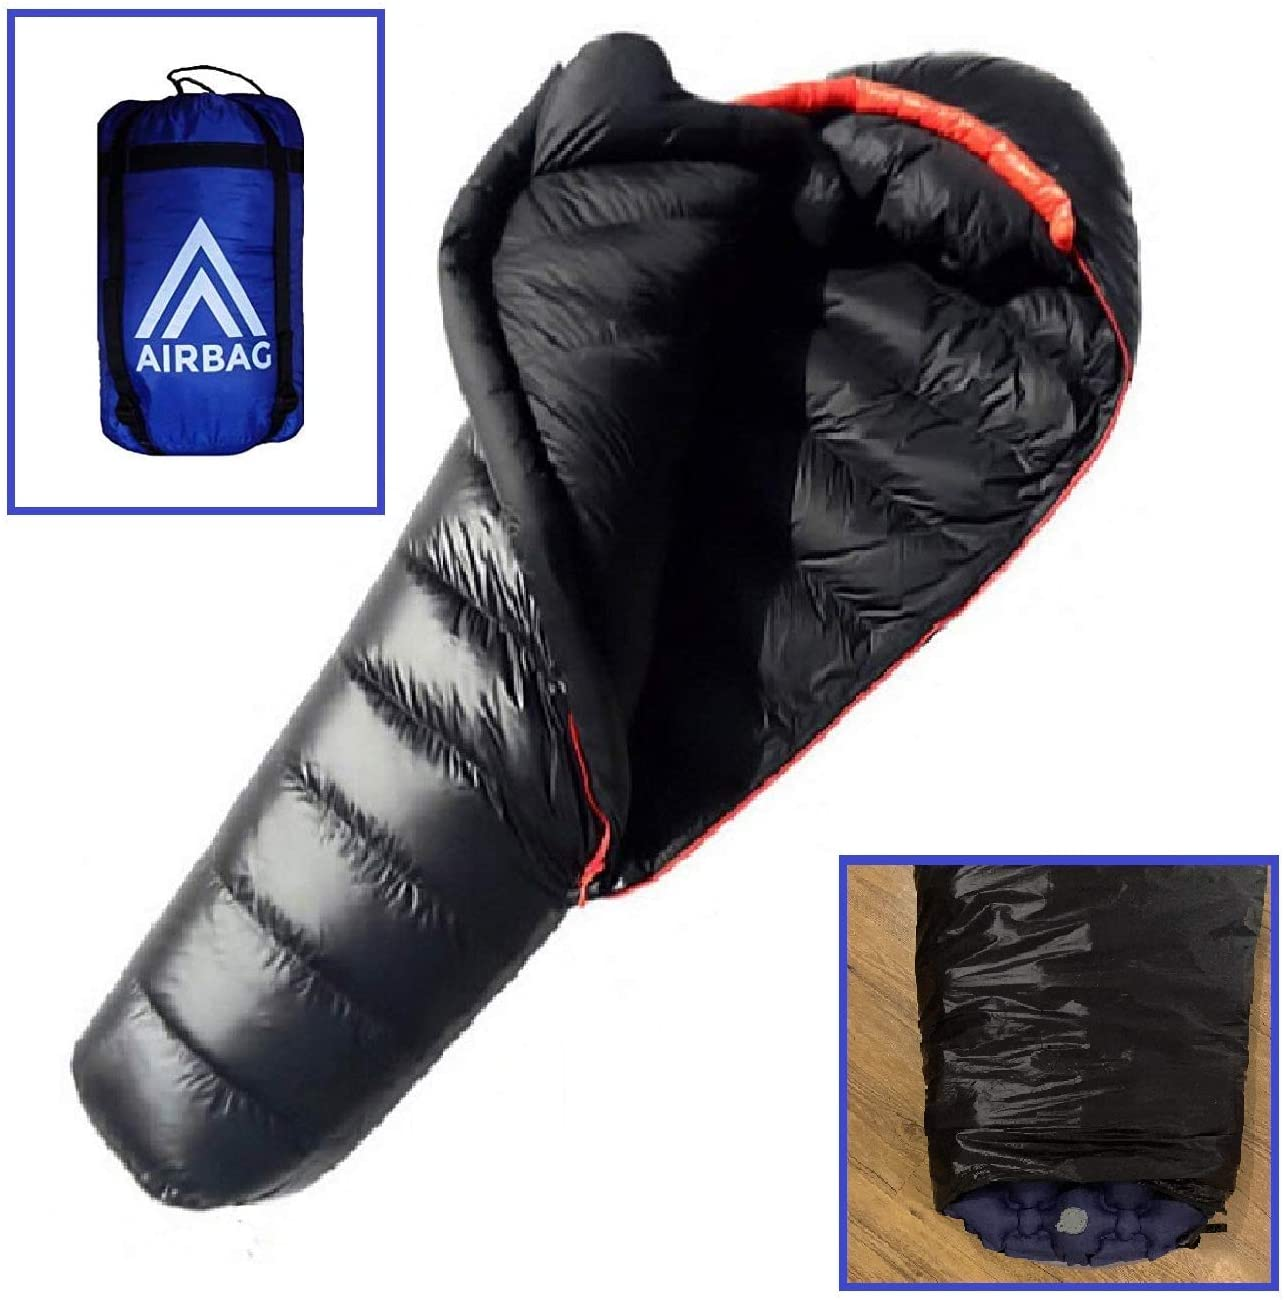 AirBag 3.0 Inflatable Sleeping Bag Camping - Ultralight & Compact for Adults & Kids - Sleeping Bag with Integrated Air Mattress and Compression Sack…